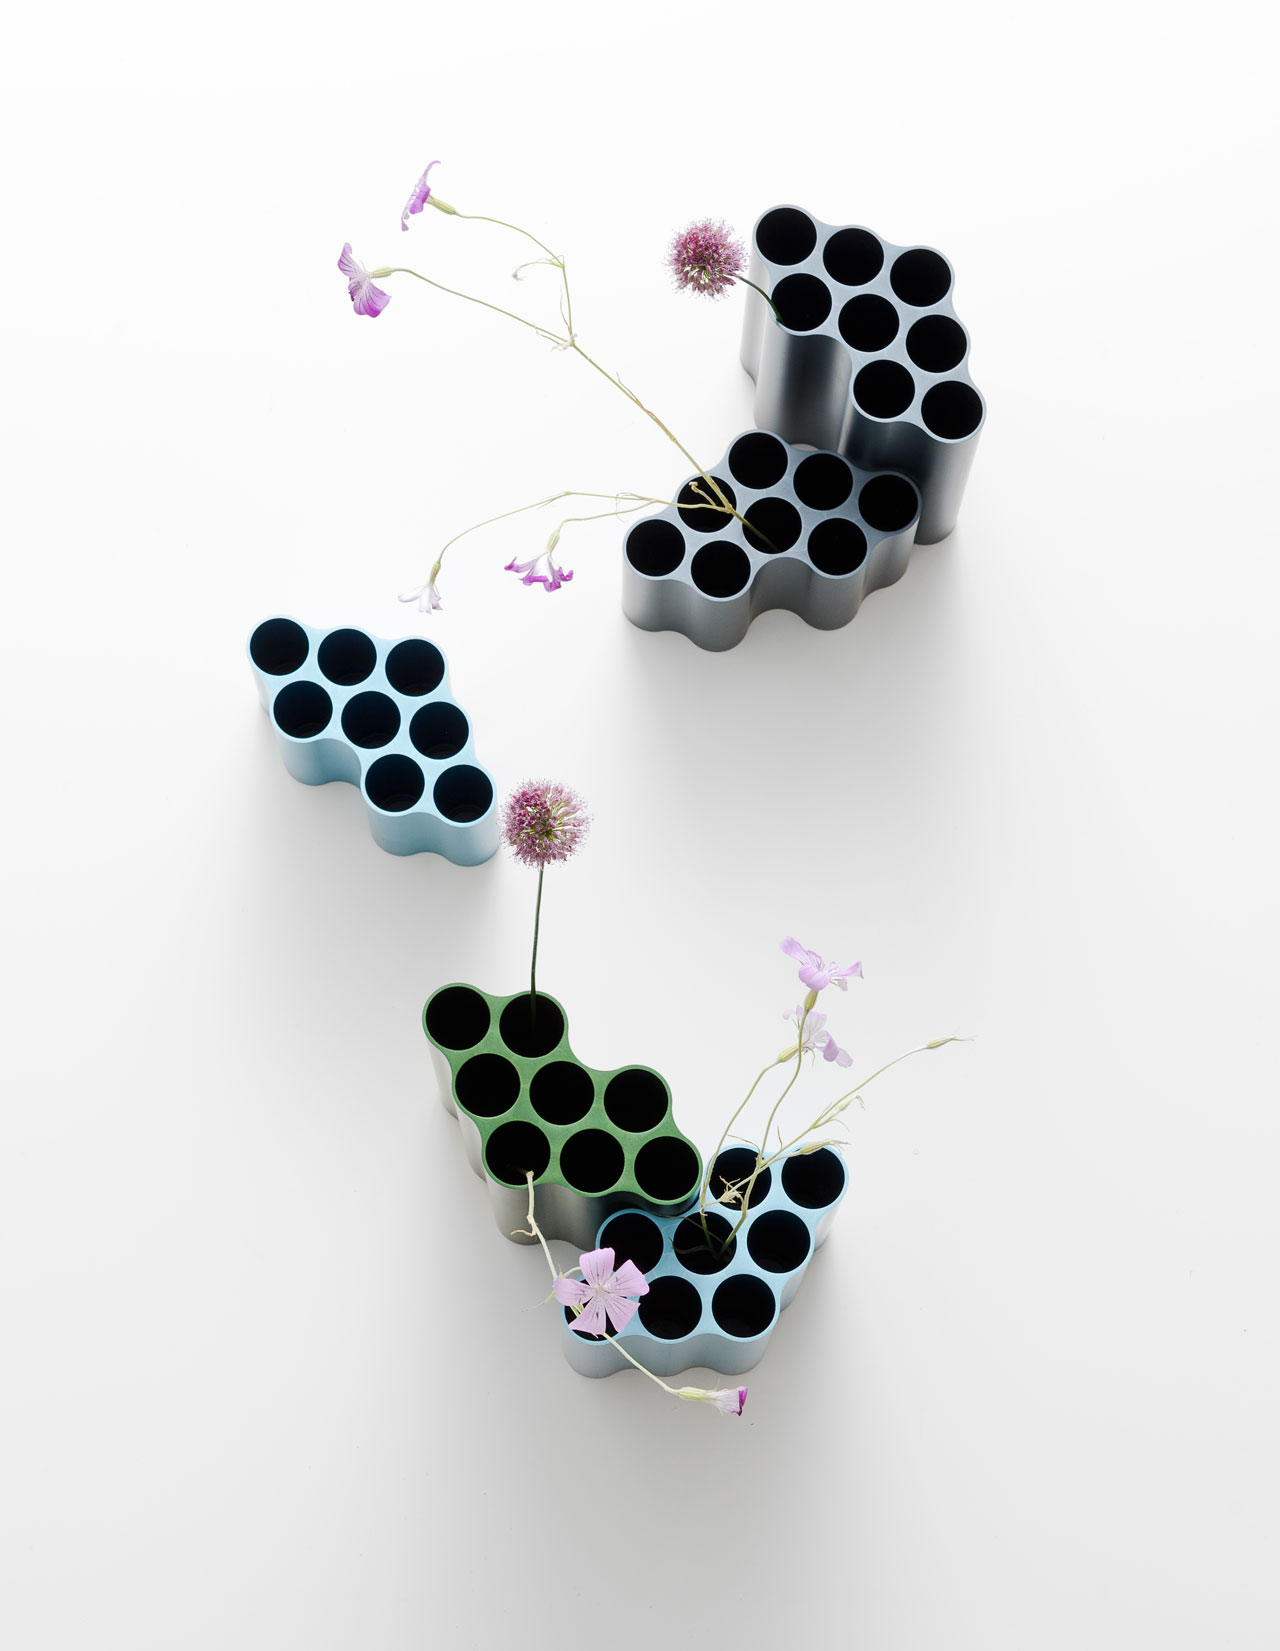 Nuage vases by Ronan & Erwan Bouroullec for Vitra.